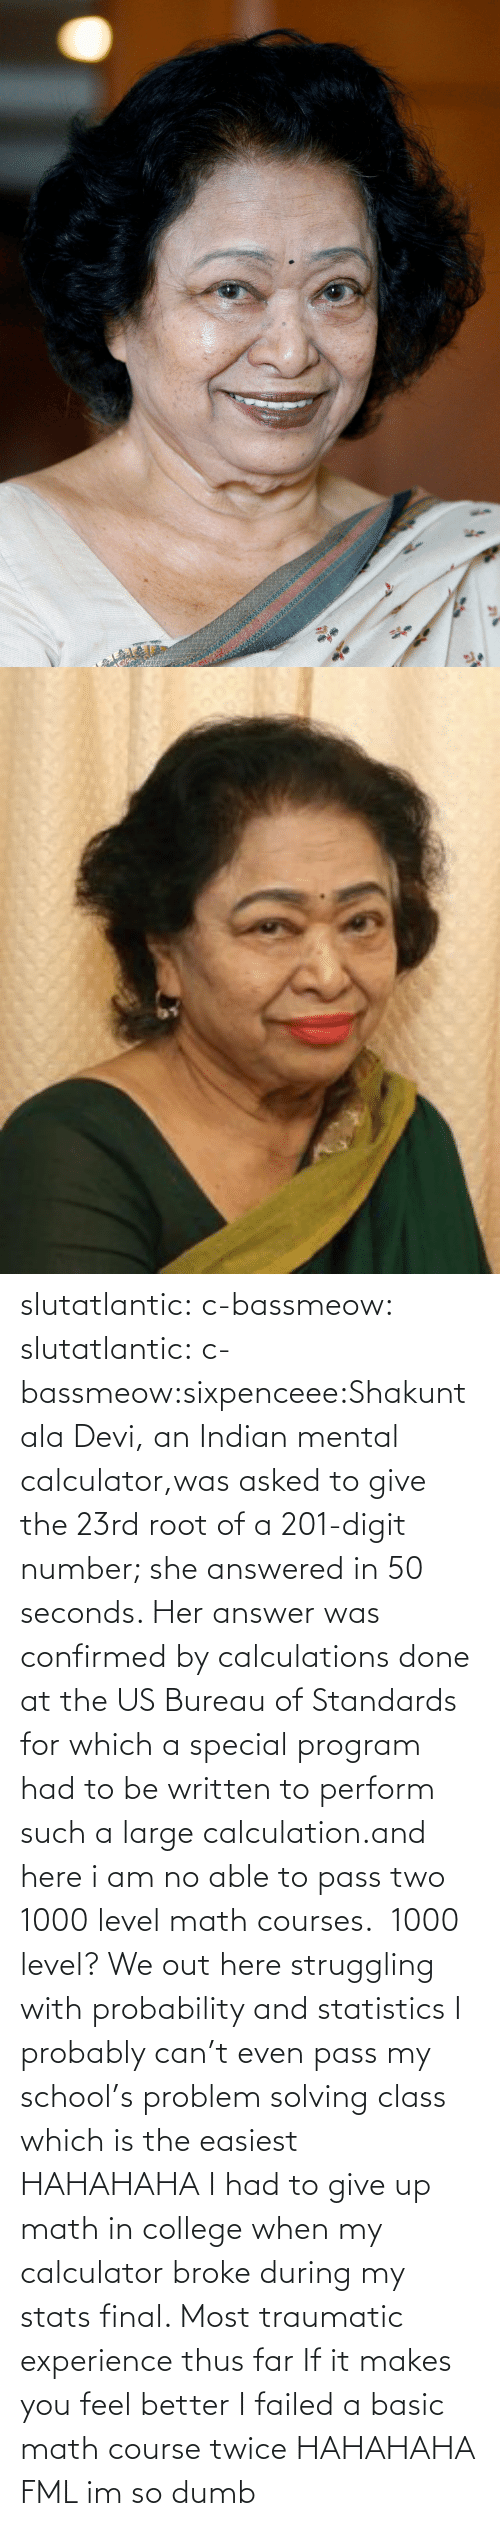 Im So Dumb: XXXX-XX-X XXXXXXX XX slutatlantic:  c-bassmeow:  slutatlantic:  c-bassmeow:sixpenceee:Shakuntala Devi, an Indian mental calculator,was asked to give the 23rd root of a 201-digit number; she answered in 50 seconds. Her answer was confirmed by calculations done at the US Bureau of Standards for which a special program had to be written to perform such a large calculation.and here i am no able to pass two 1000 level math courses.   1000 level? We out here struggling with probability and statistics  I probably can't even pass my school's problem solving class which is the easiest  HAHAHAHA  I had to give up math in college when my calculator broke during my stats final. Most traumatic experience thus far  If it makes you feel better I failed a basic math course twice HAHAHAHA FML im so dumb